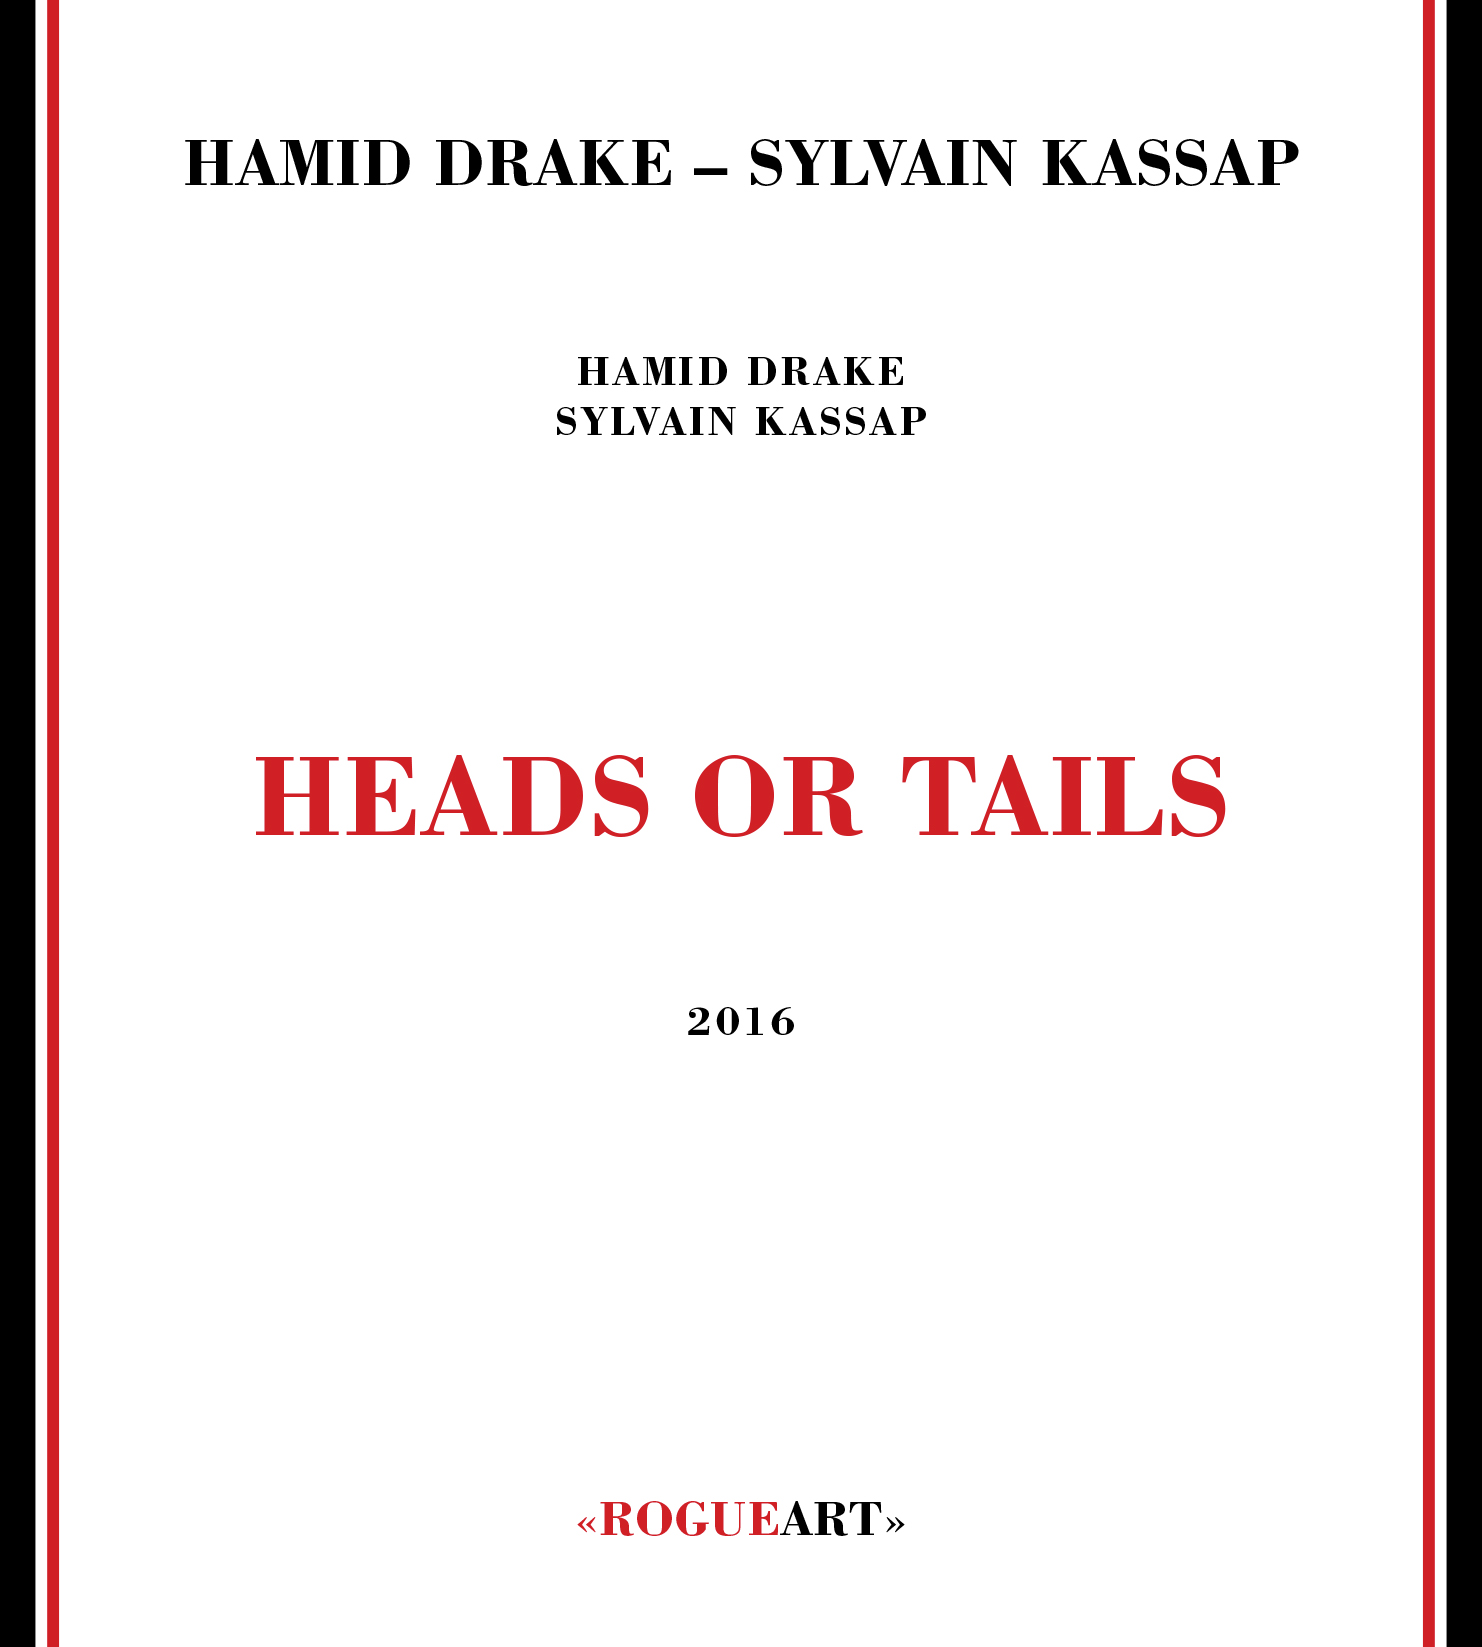 Front conver of the album HEADS OR TAILS